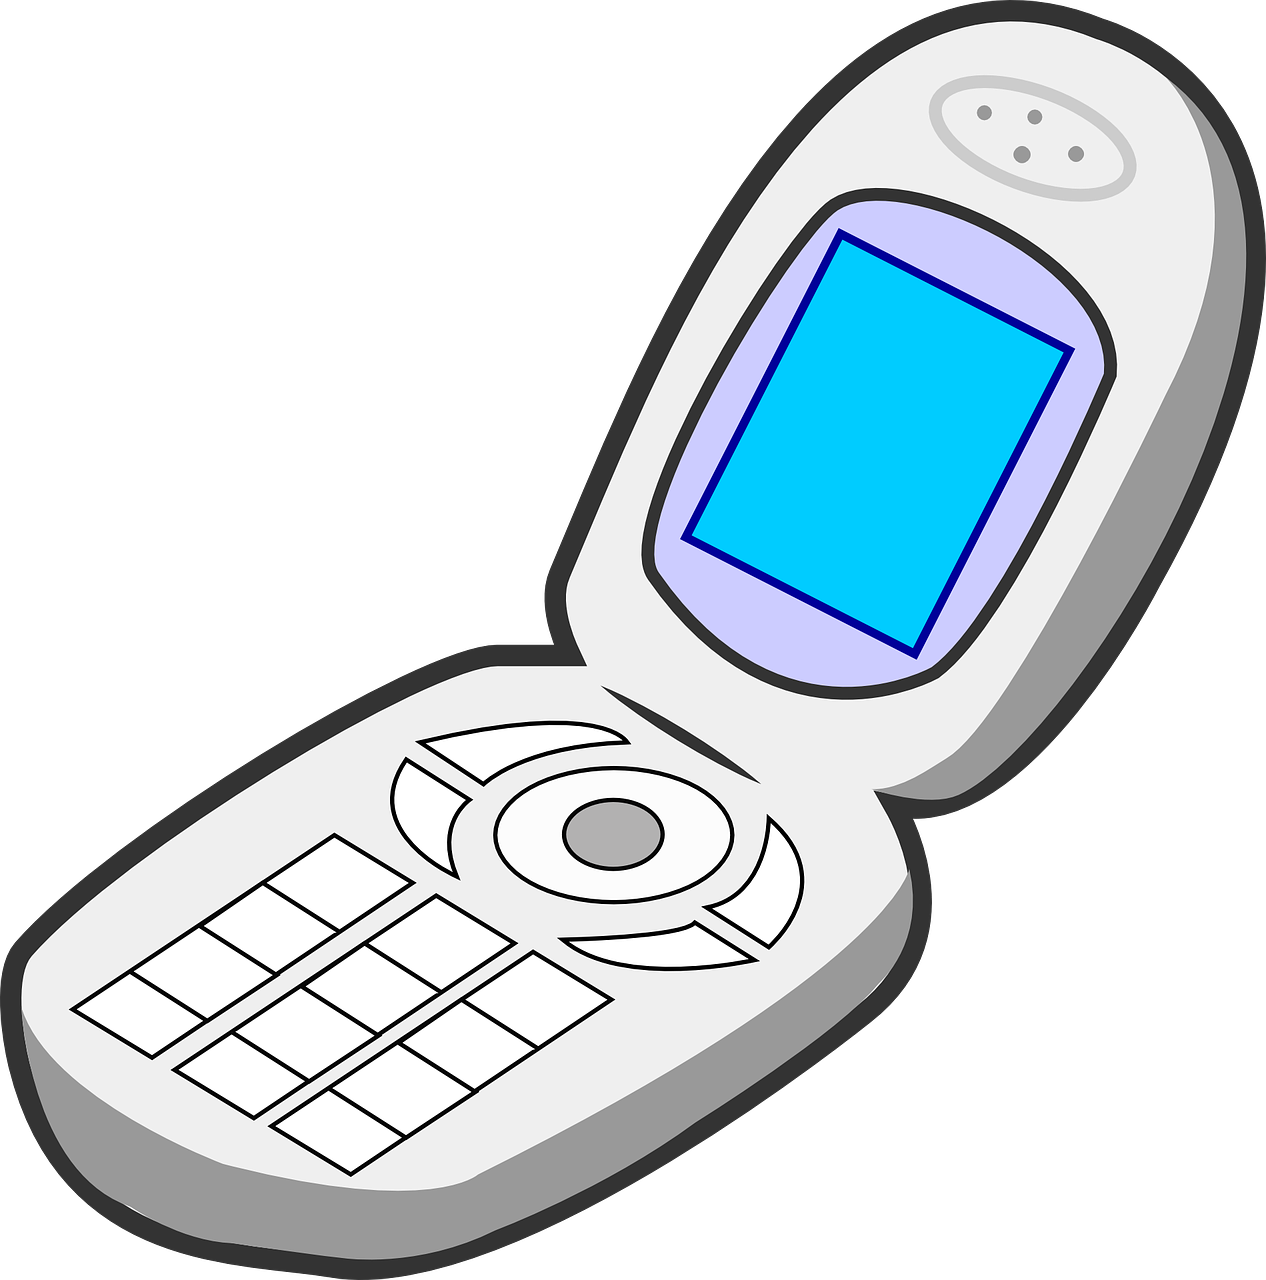 Telephone book clipart jpg black and white download Cell Phone Clipart at GetDrawings.com | Free for personal use Cell ... jpg black and white download